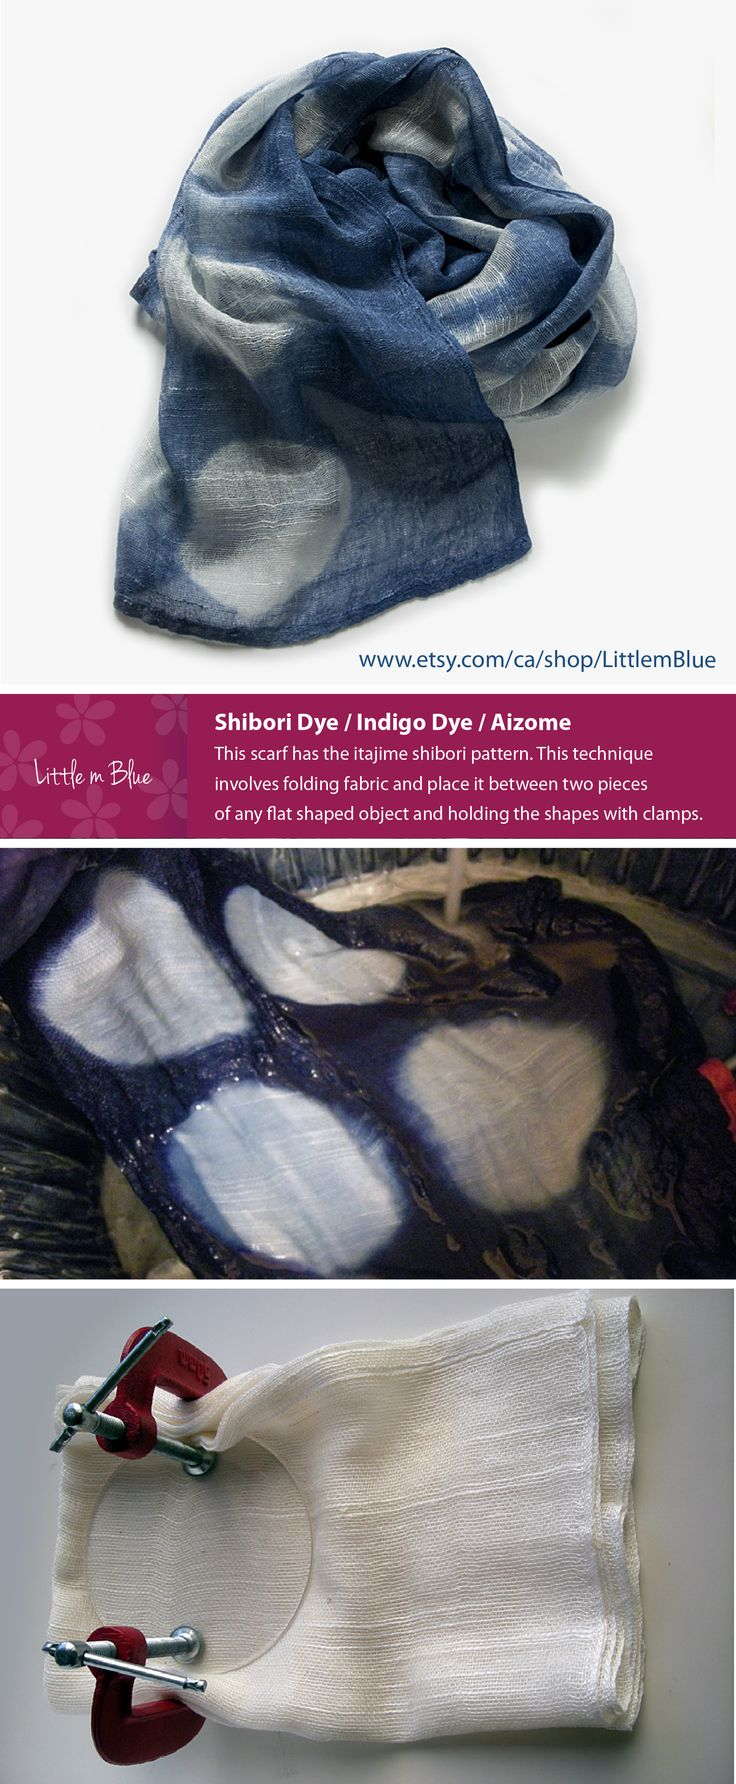 Shibori Dye / Indigo Dye / Aizome This scarf has the itajime shibori pattern. This technique involves folding fabric and place it between two pieces of any flat shaped object and holding the shapes with clamps. (Little m Blue)